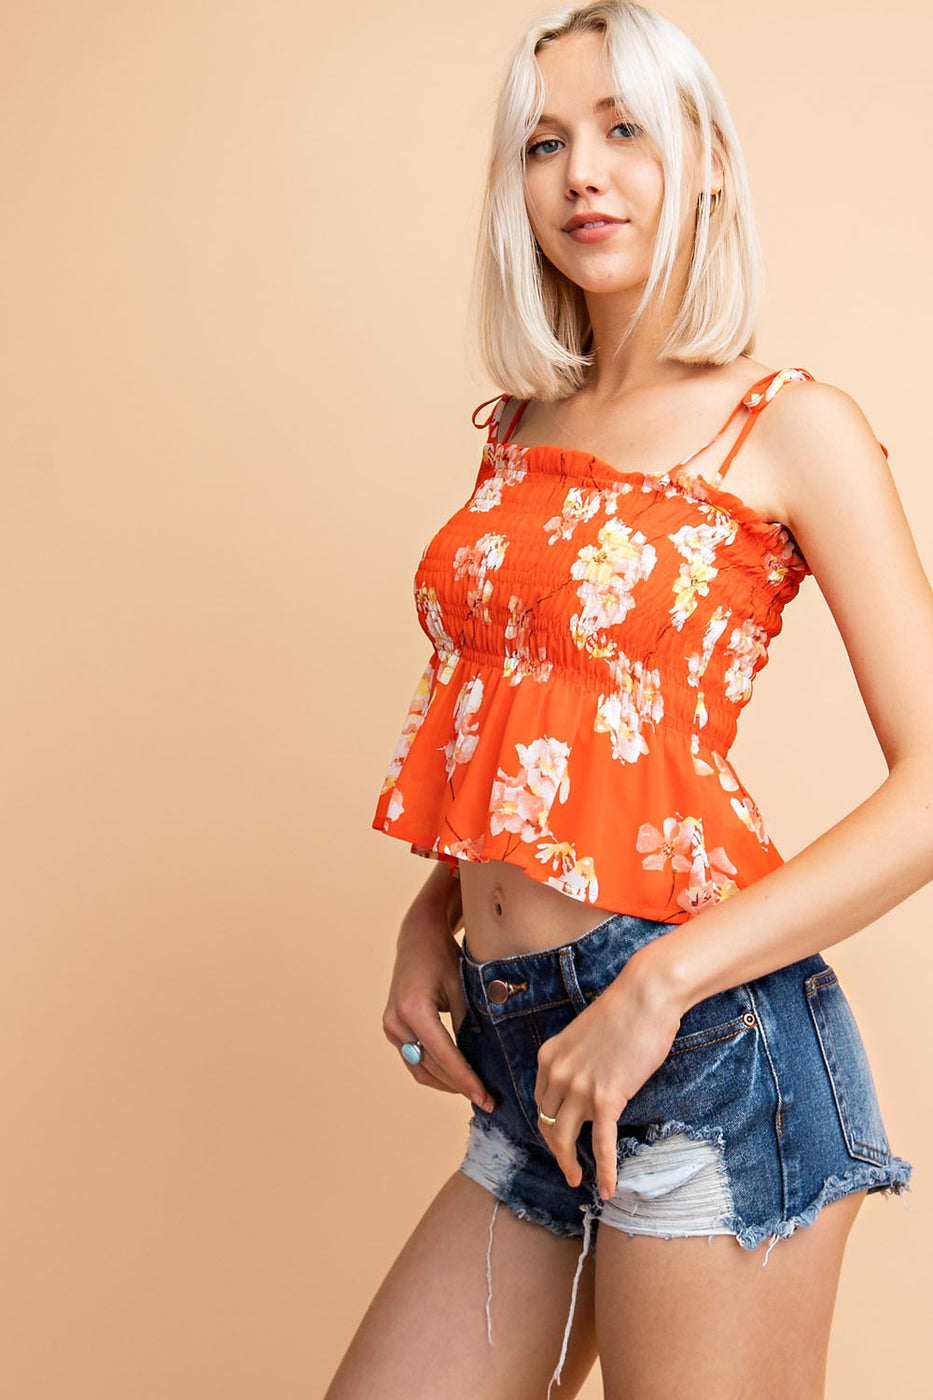 Soft Chiffon Garden Floral Prints Smocked Top Siin Bees